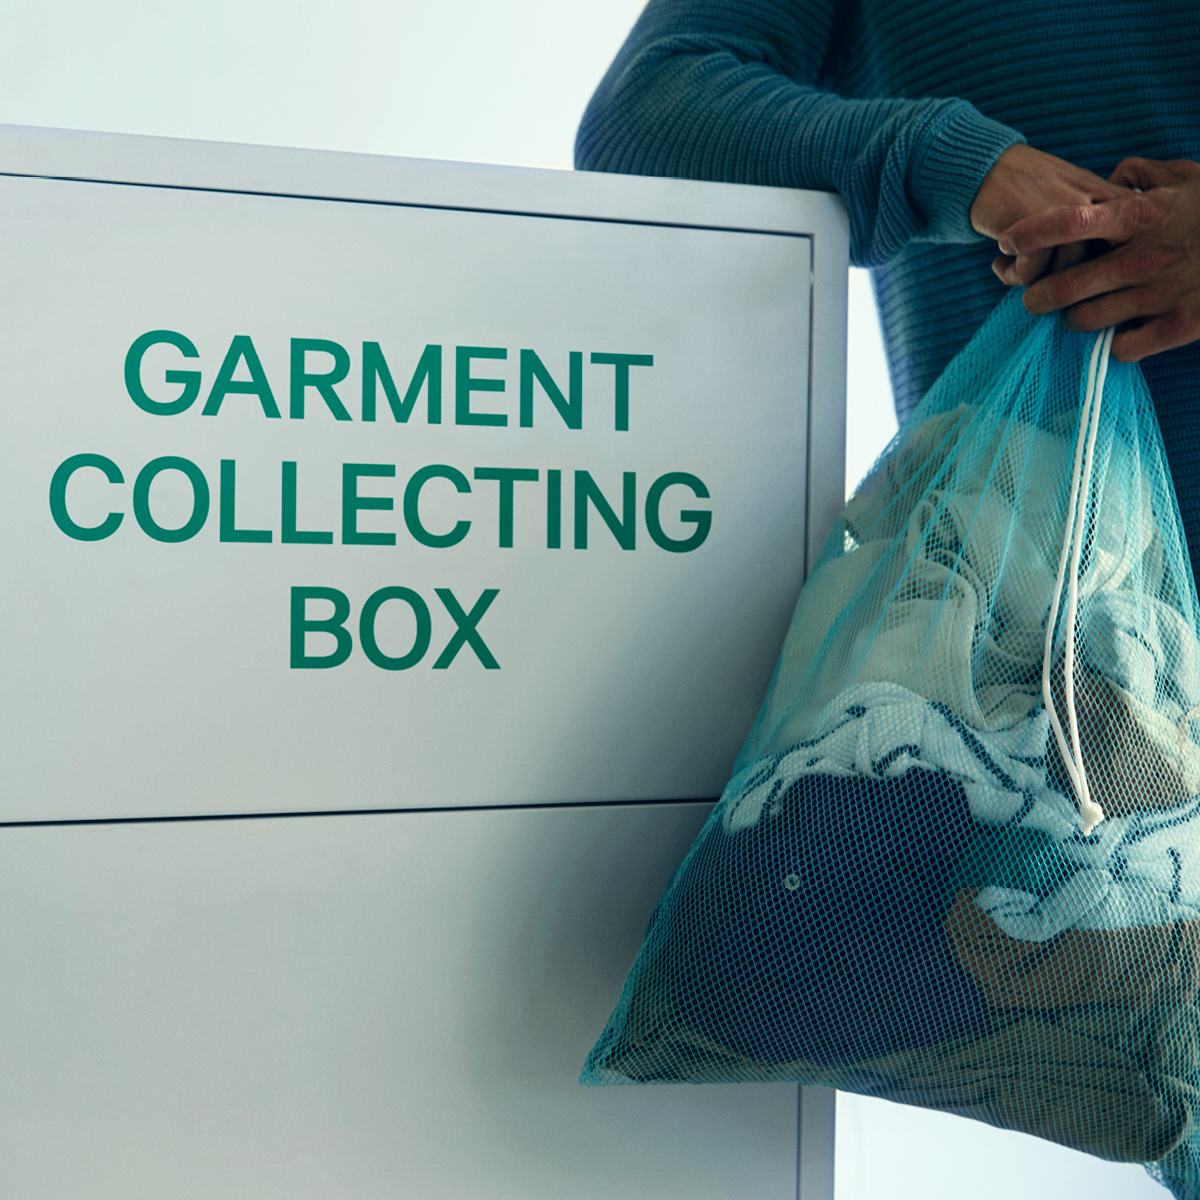 H&M-Garment-Collecting-Box-Don't-let-fashion-go-to-waste-reciclare-haine-voucher-cumparaturi